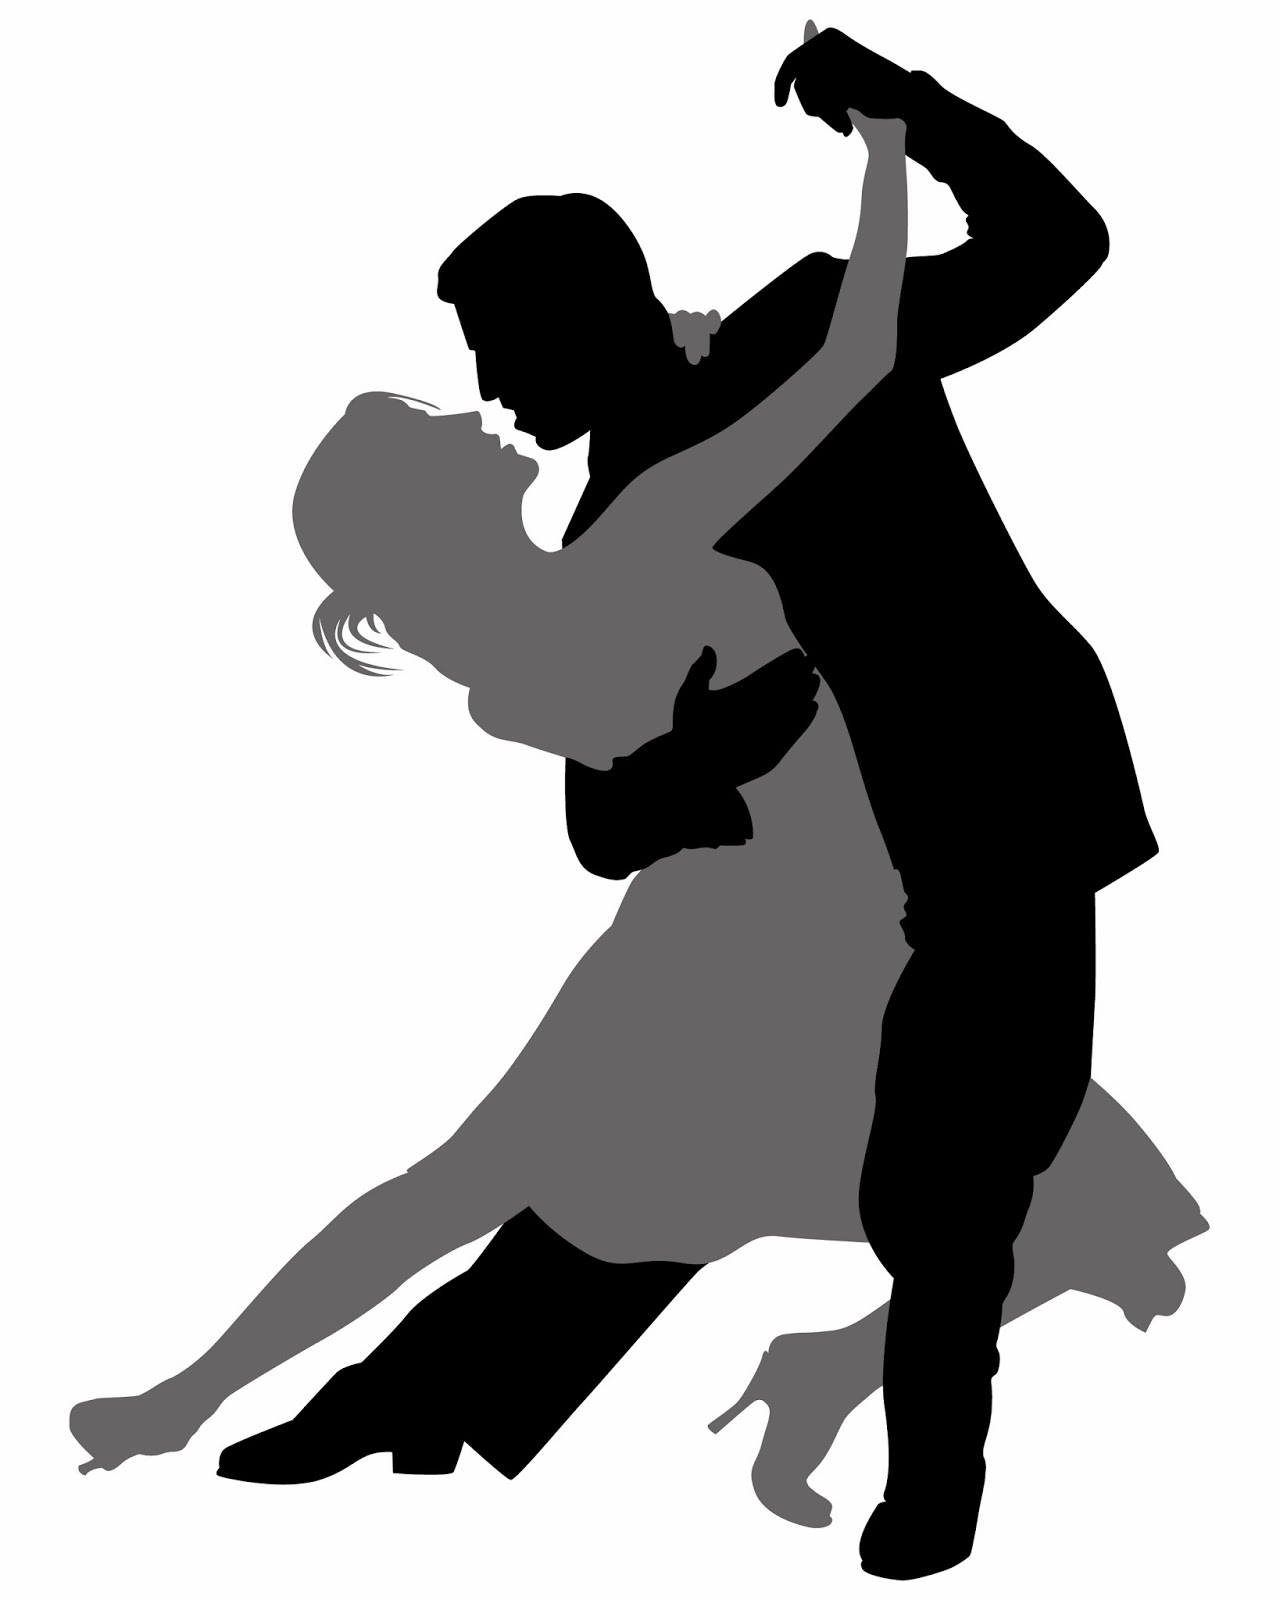 Ballroom Dance Into Spring The Record clipart free image.